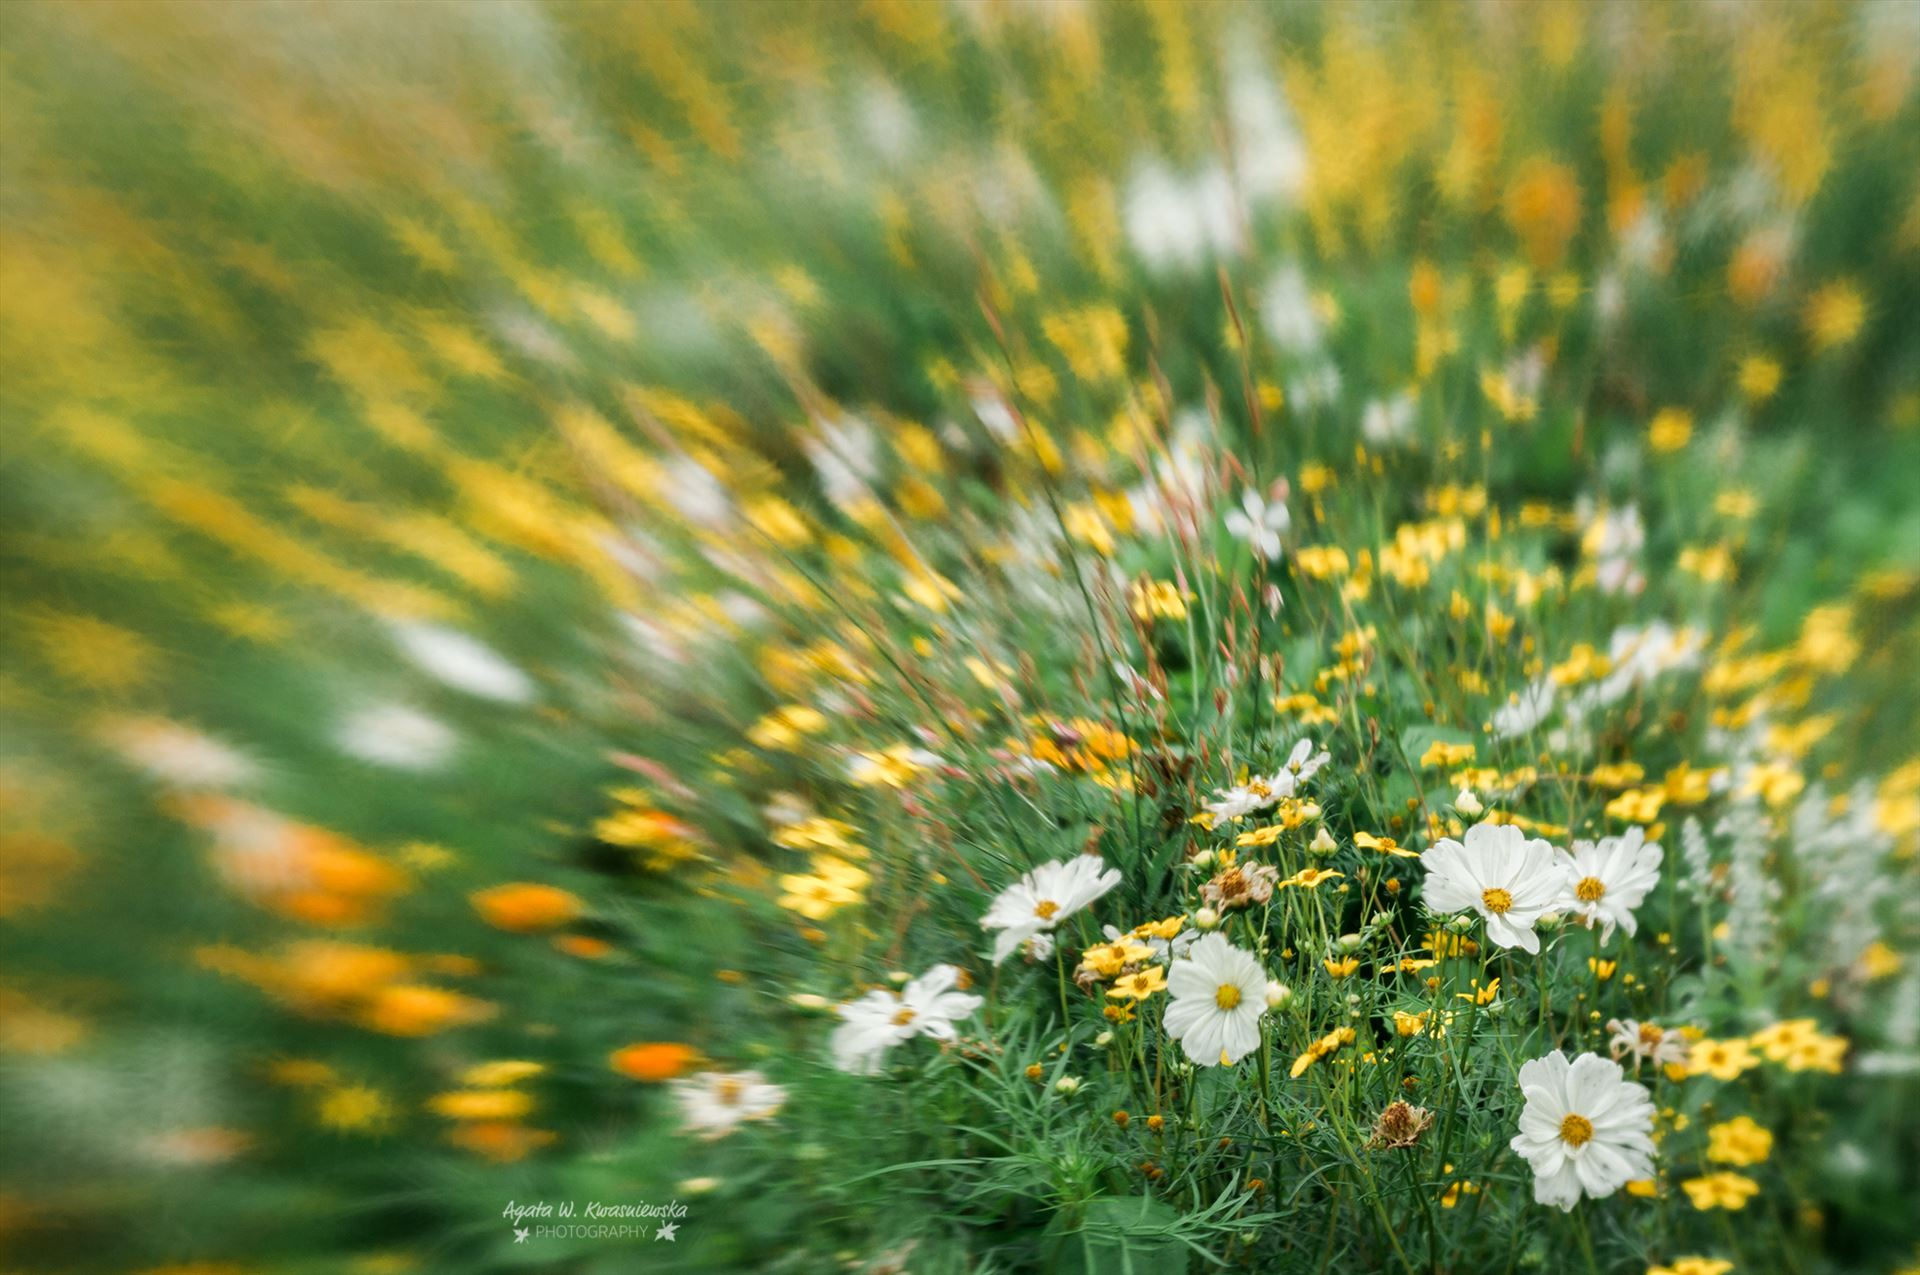 Flower meadow -  by Agata W. Kwasniewska Photography